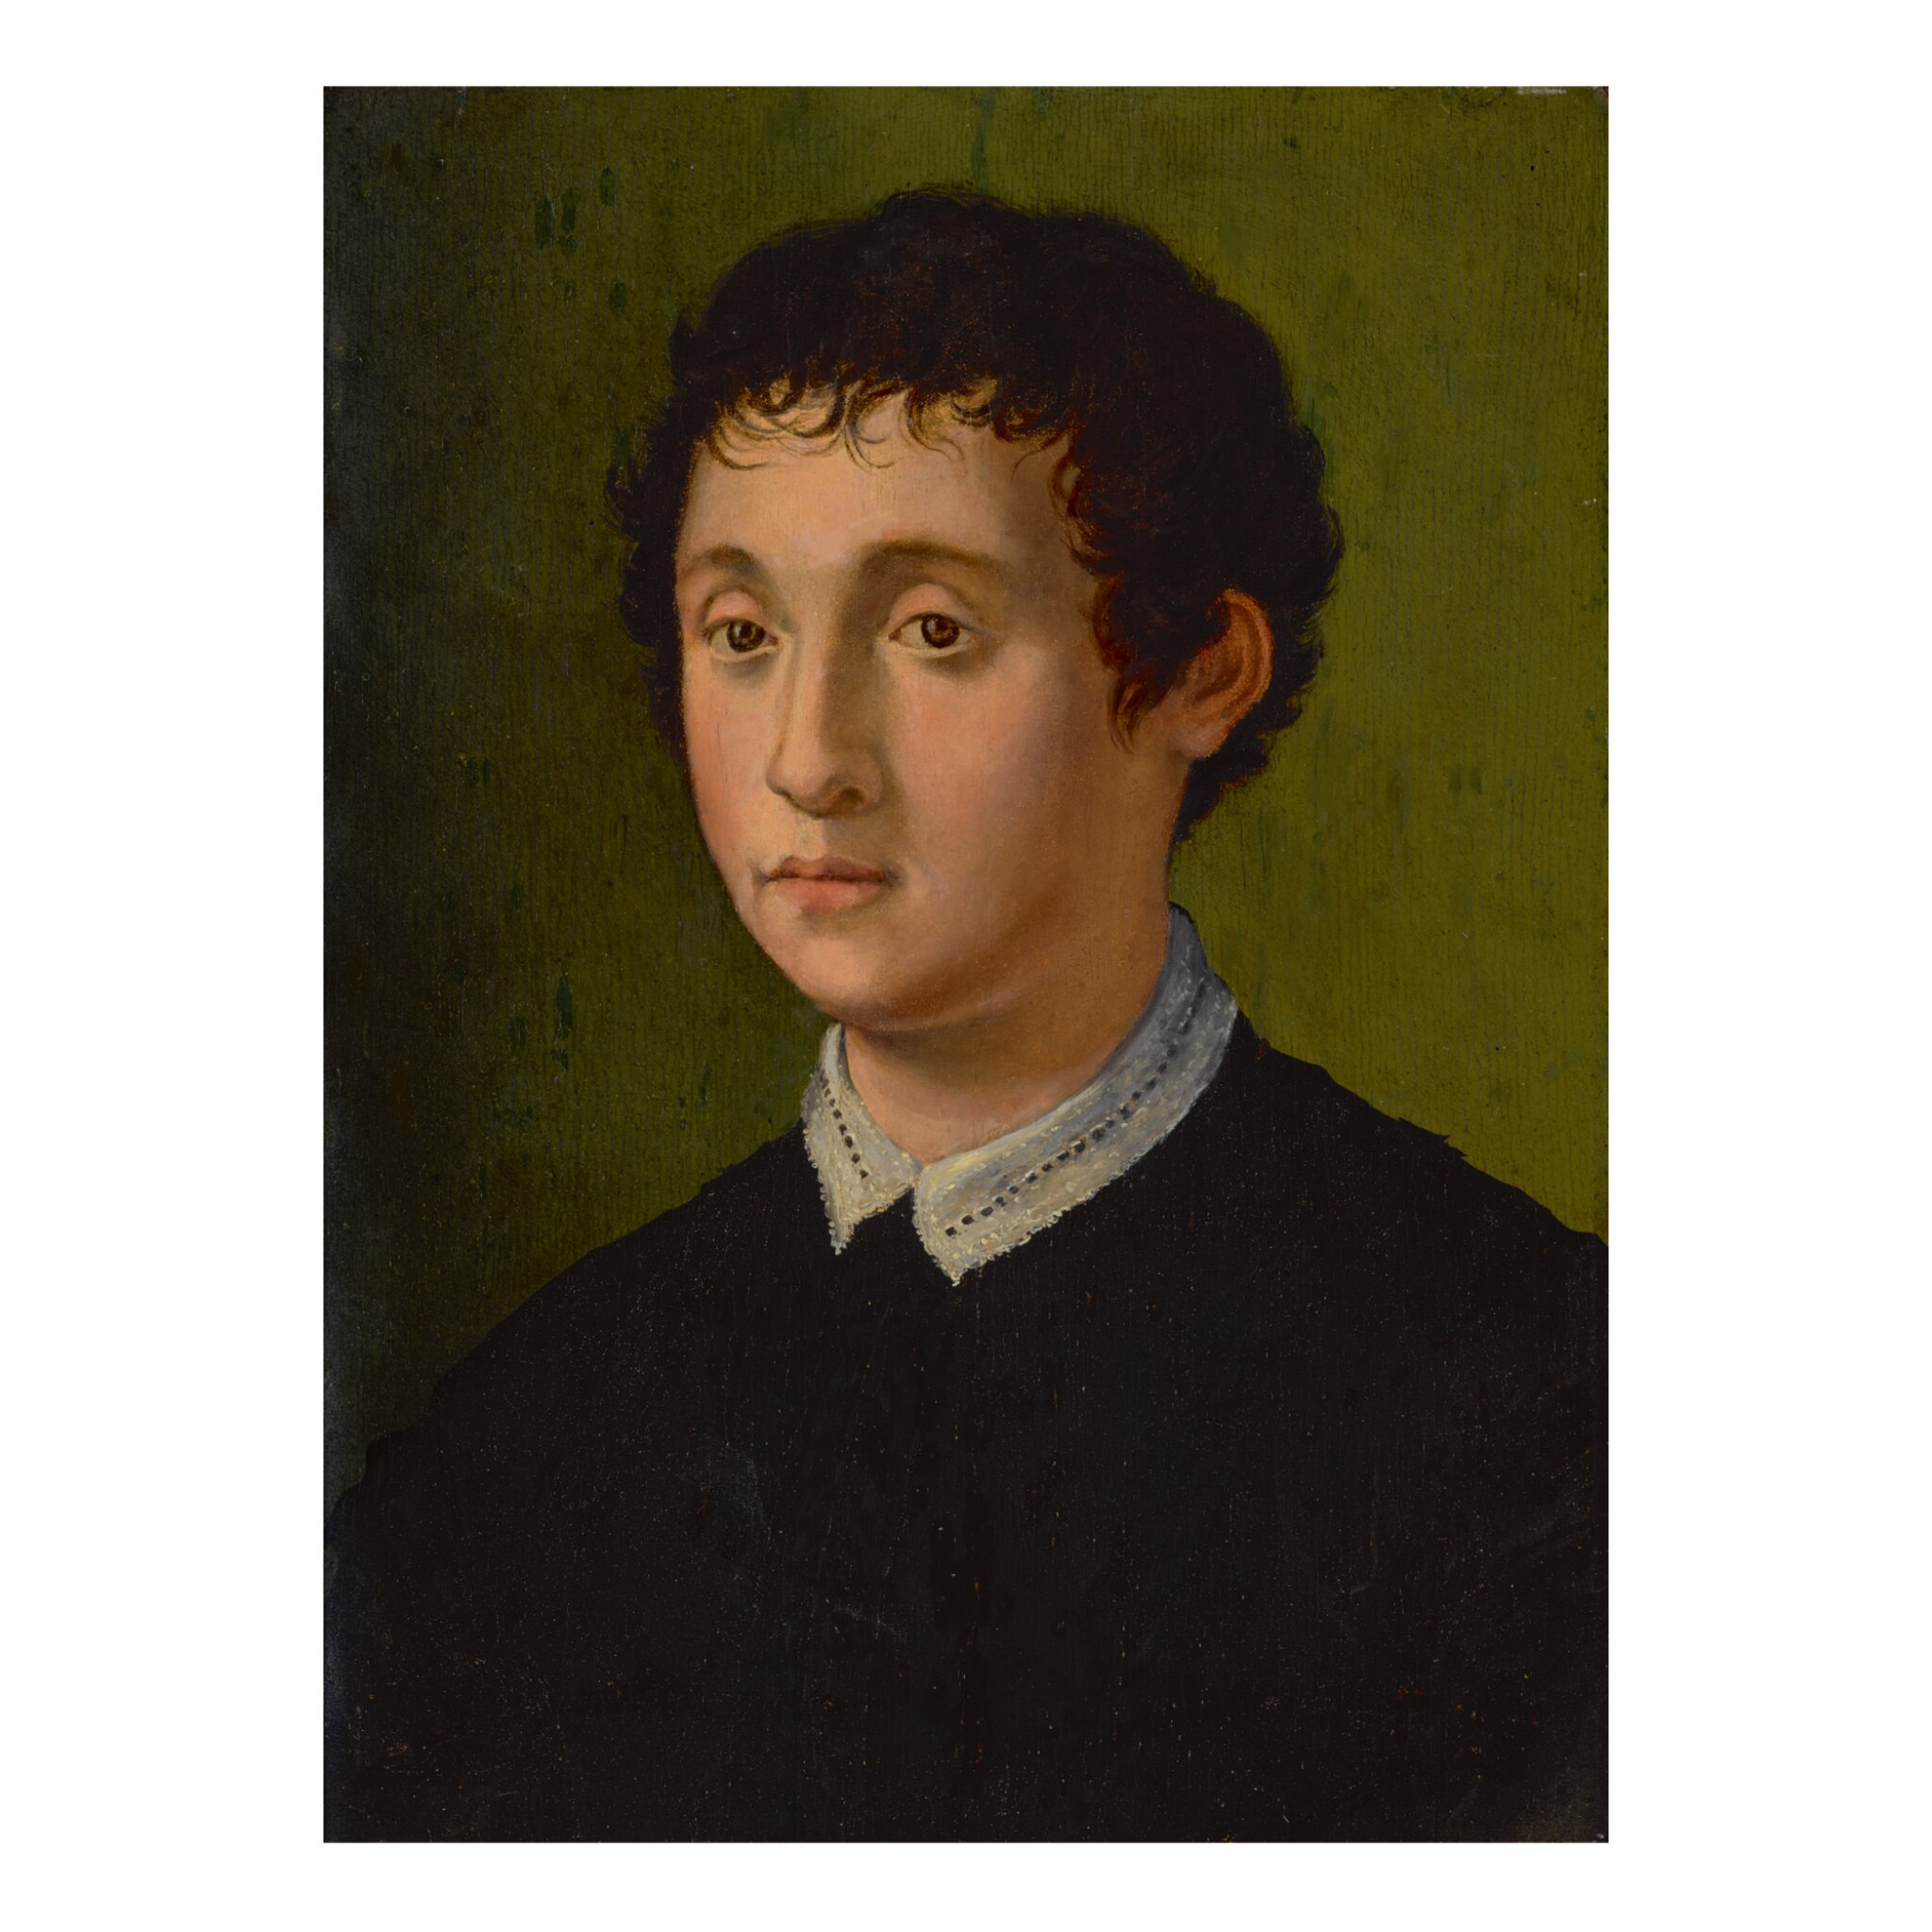 View 1 of Lot 39. 39 CARLO PORTELLI   PORTRAIT OF A YOUNG MAN. BUST LENGTH, FACING LEFT, WITH A WHITE LACE COLLAR   .